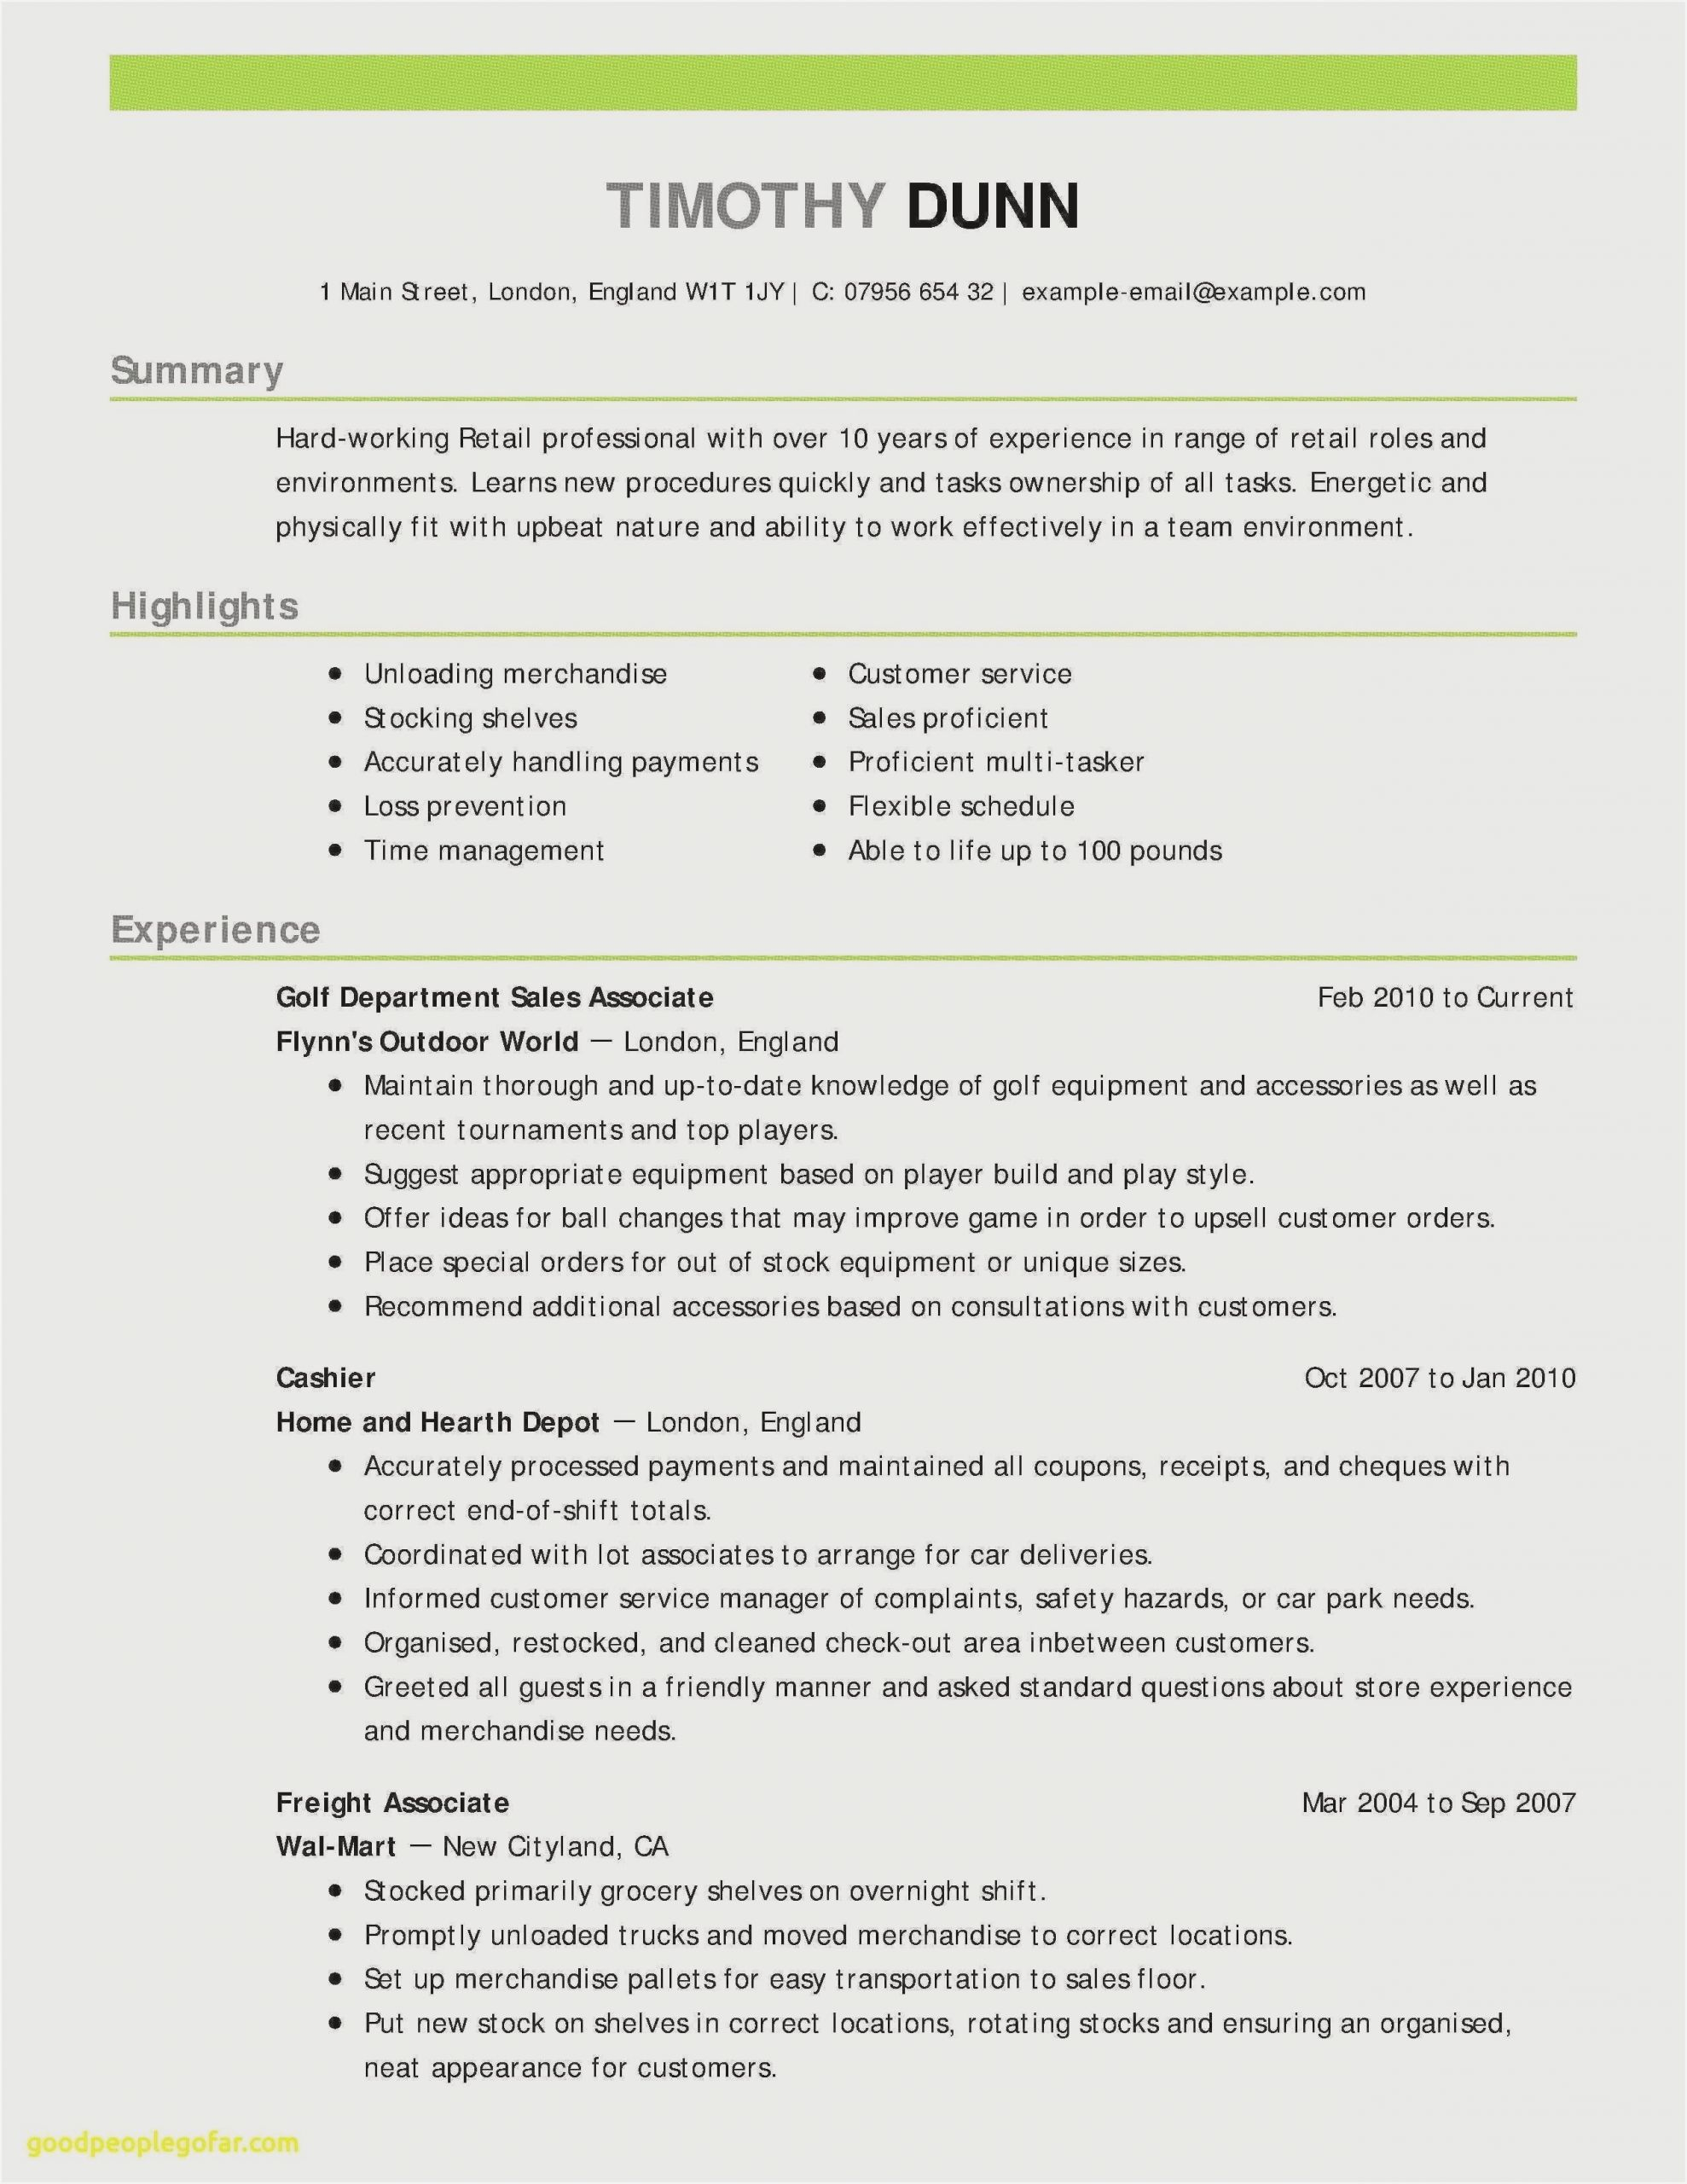 basic resume format examples sample simple scaled consulting template memberships on Resume Simple Basic Resume Format